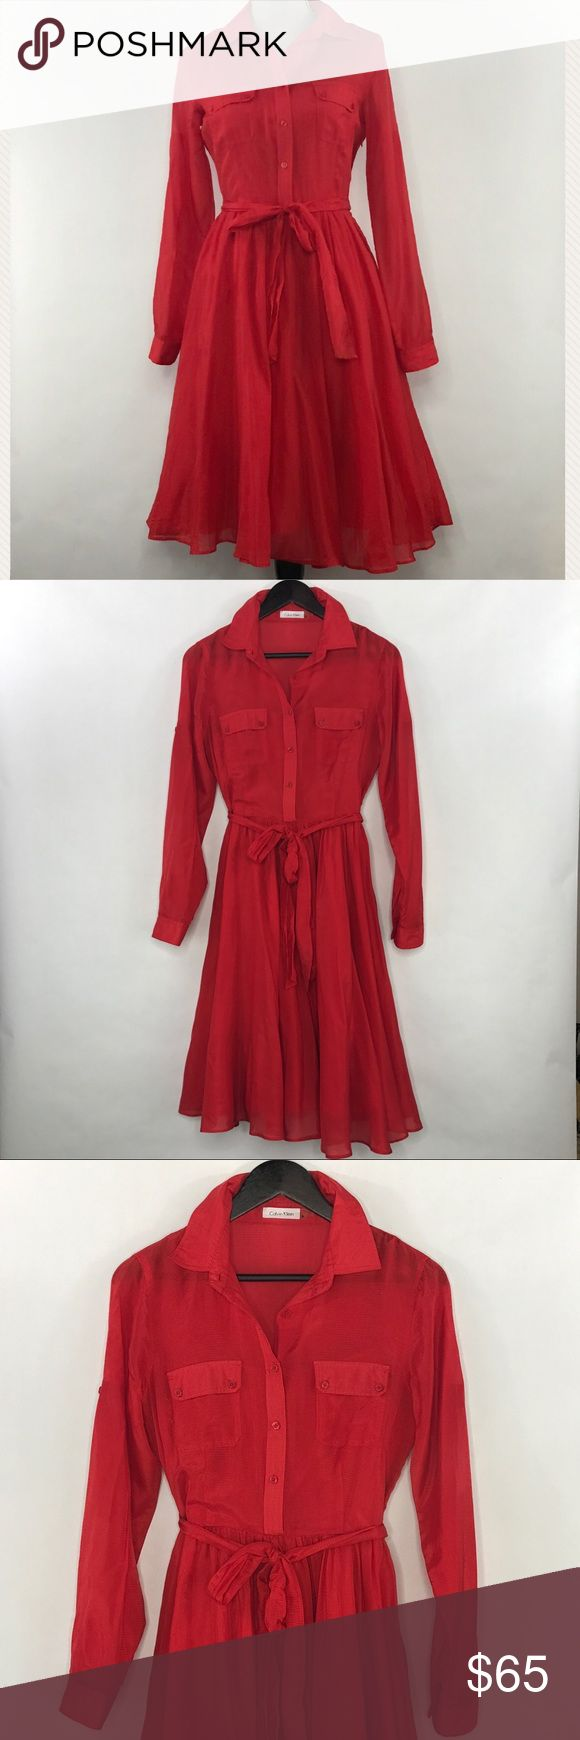 Calvin Klein dress Stunning and fashionable red dress! Button front bodice, has side zipper, button cuff and tab-up sleeves. Dress is semi-sheer but has a removable slip. Calvin Klein Dresses